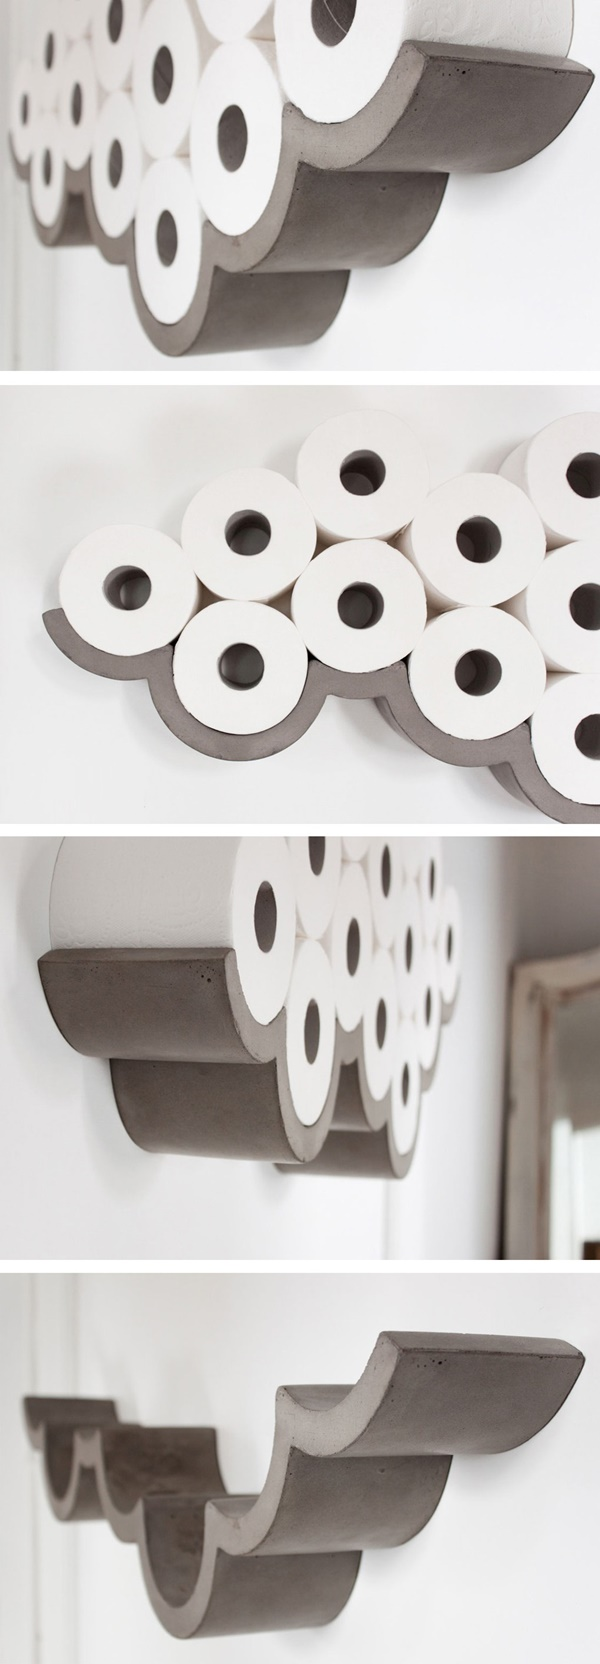 amazing ideas of DIY toilet paper holder 4